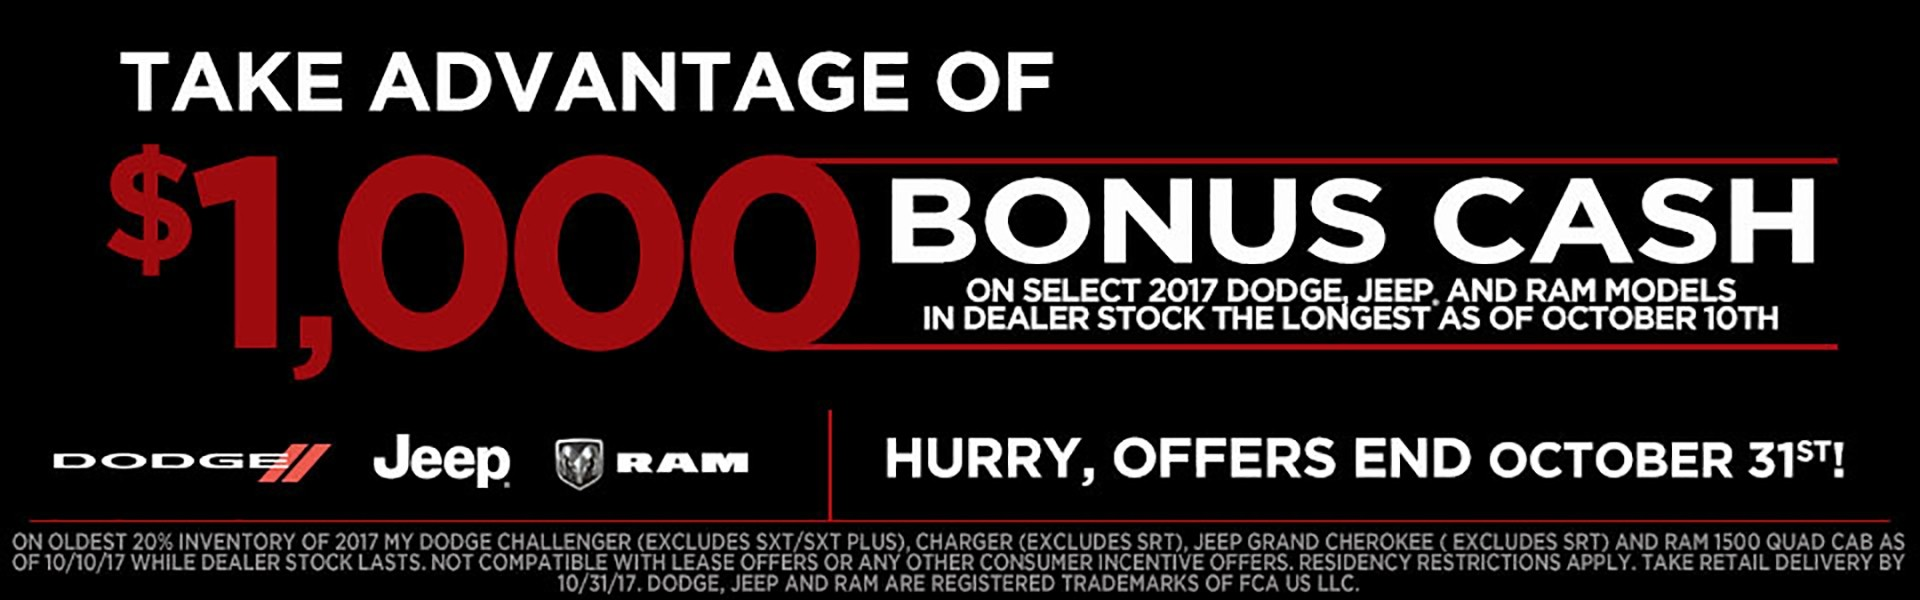 Bonus Cash Chrysler Dodge Jeep